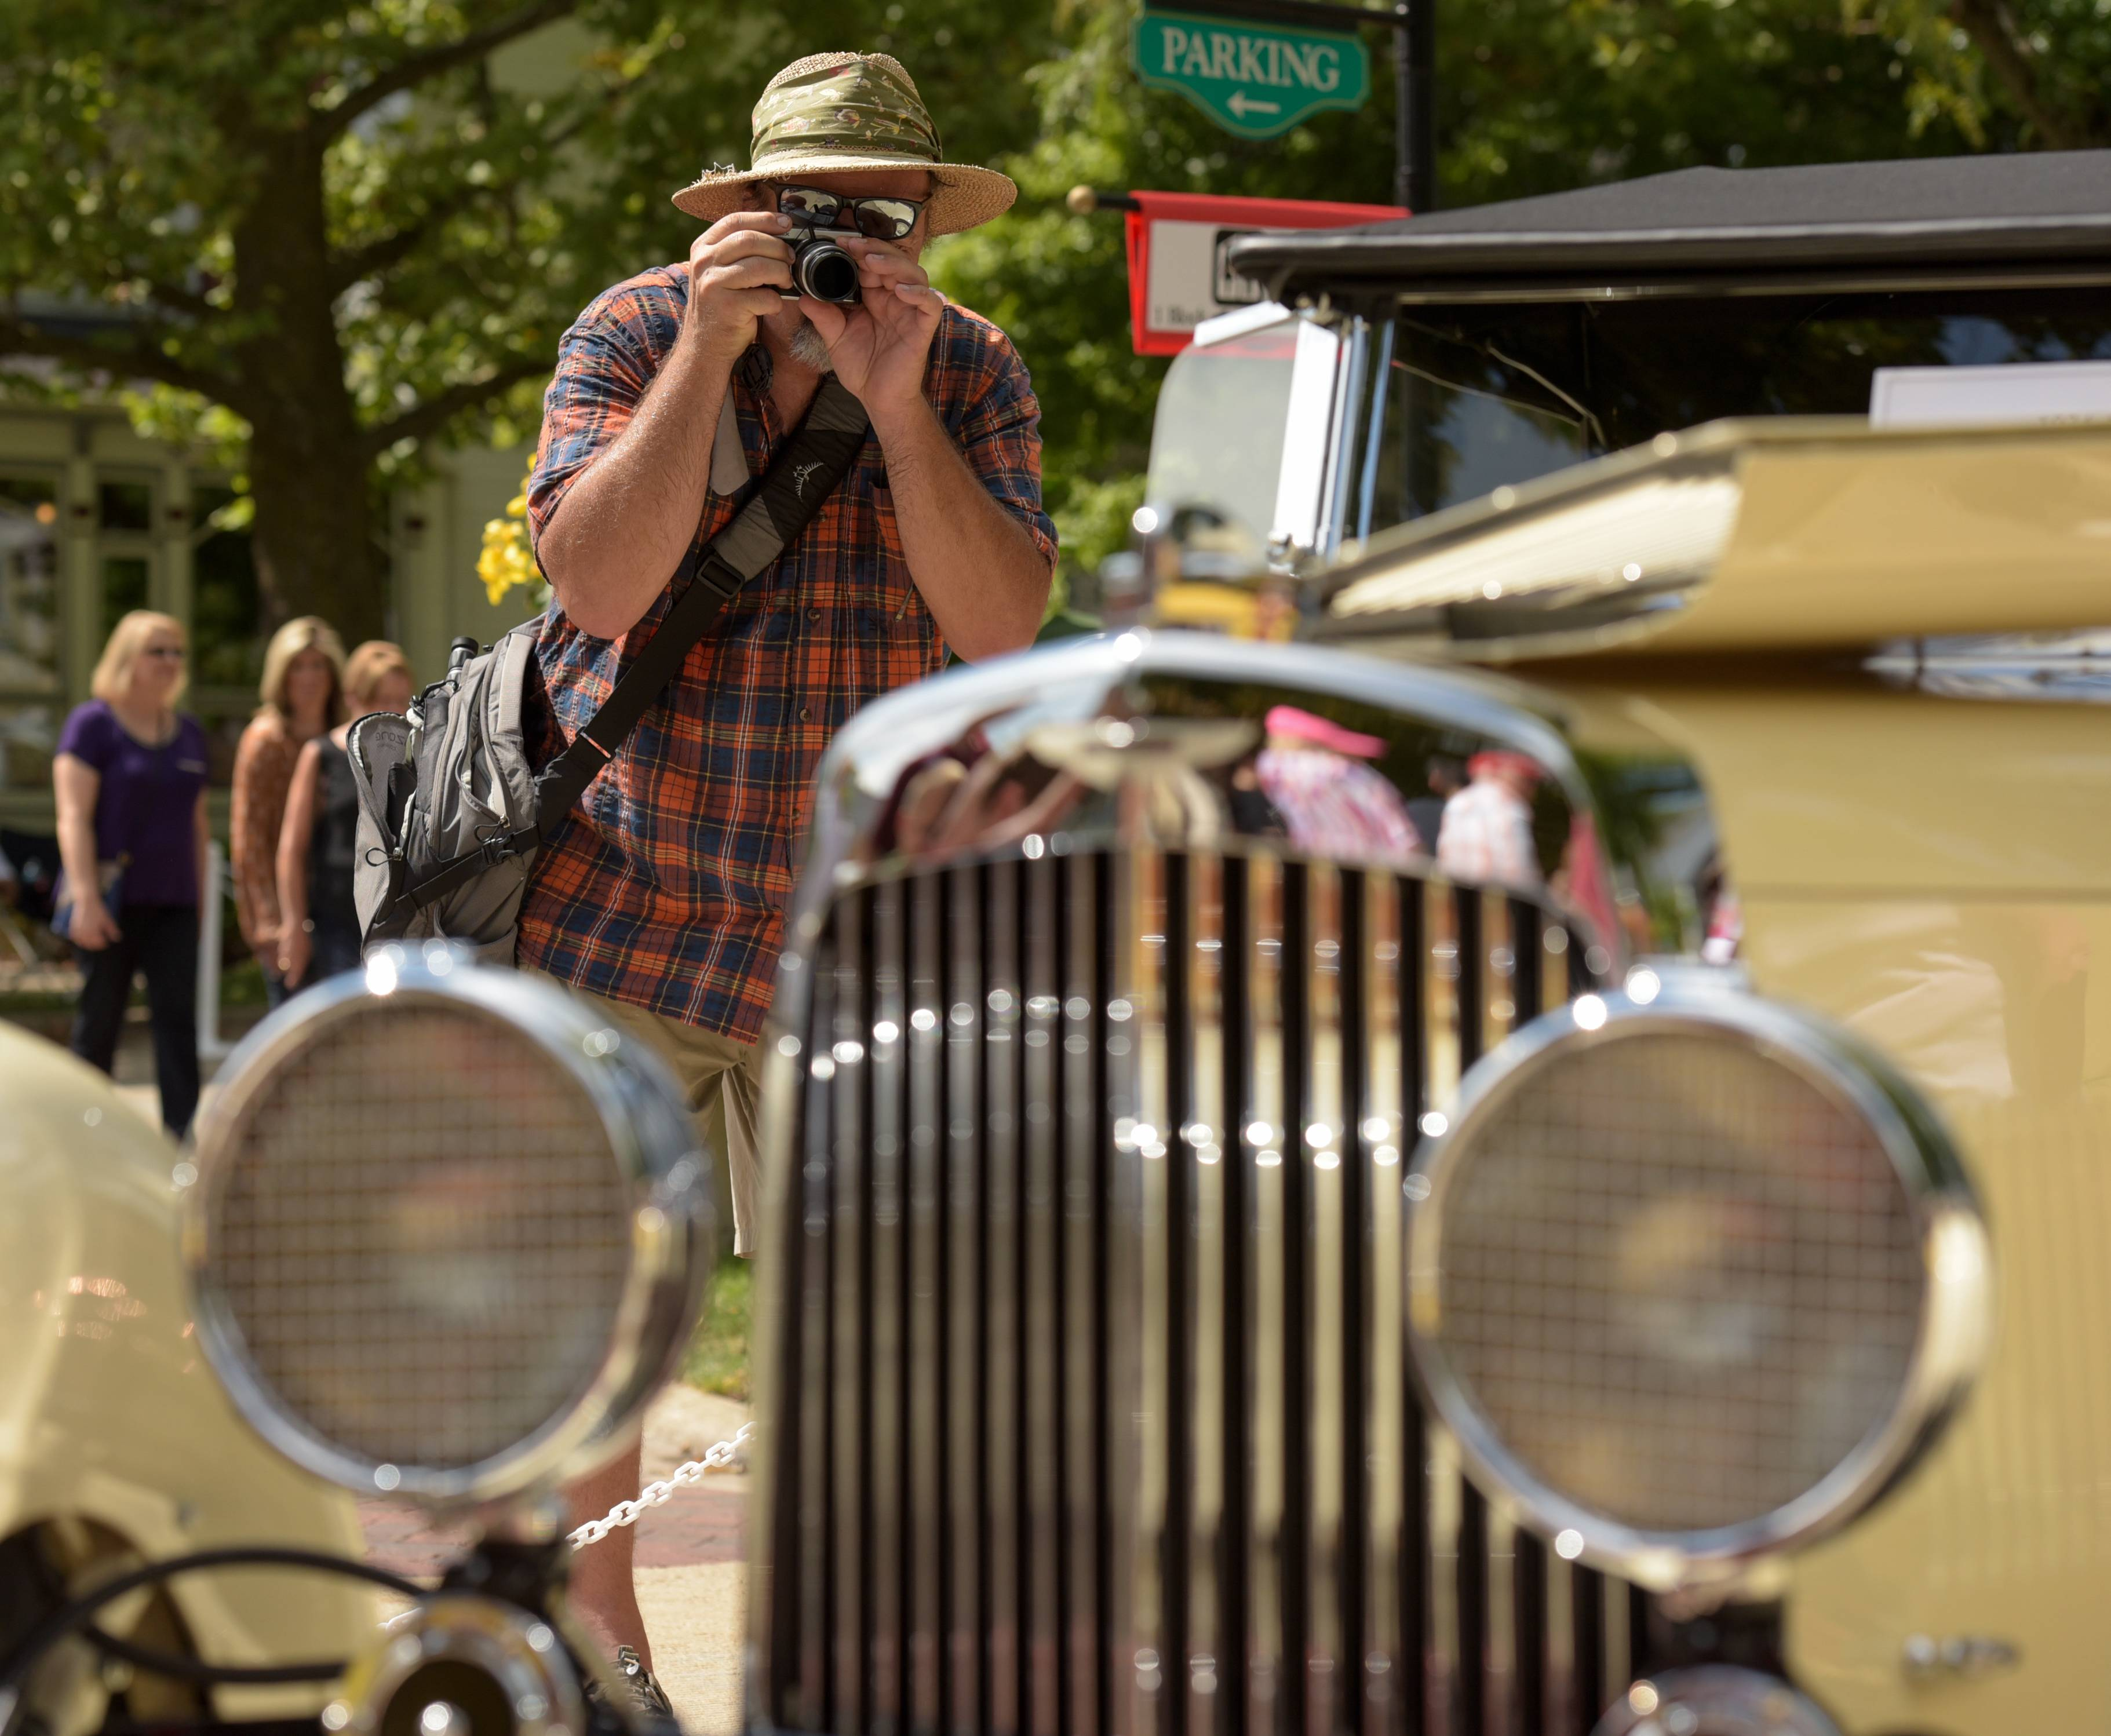 Photography enthusiast Arnie Kalnins of Batavia photographs a 1934 Aston Martin Mark II at last year's Concours d'Elegance car show in downtown Geneva. Kalnins comes to the show every year.